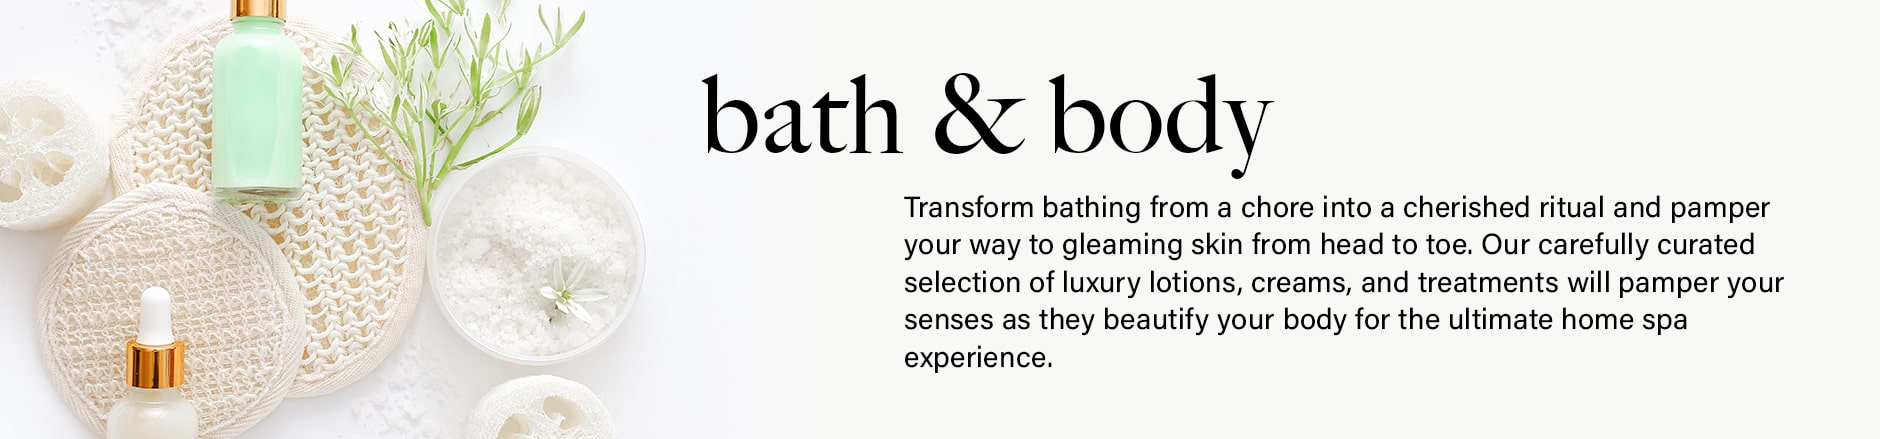 bath-and-body-collection-banner-image (min)